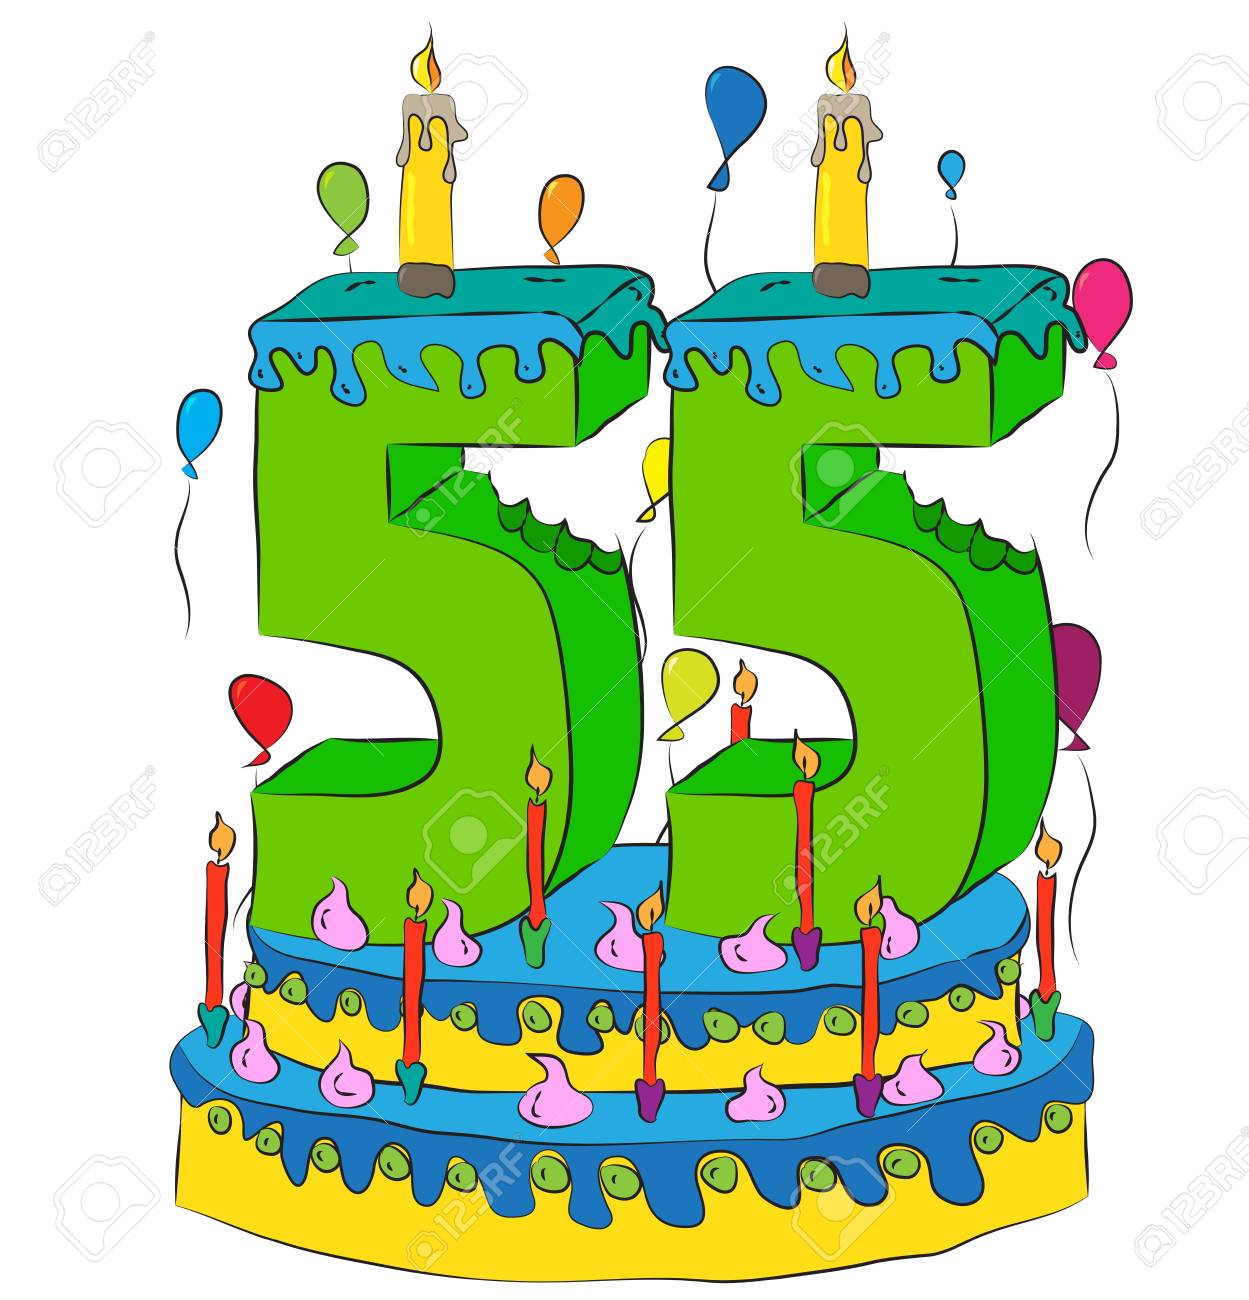 Surprising 55 Birthday Cake With Number Fifty Five Candle Celebrating Fifty Personalised Birthday Cards Paralily Jamesorg